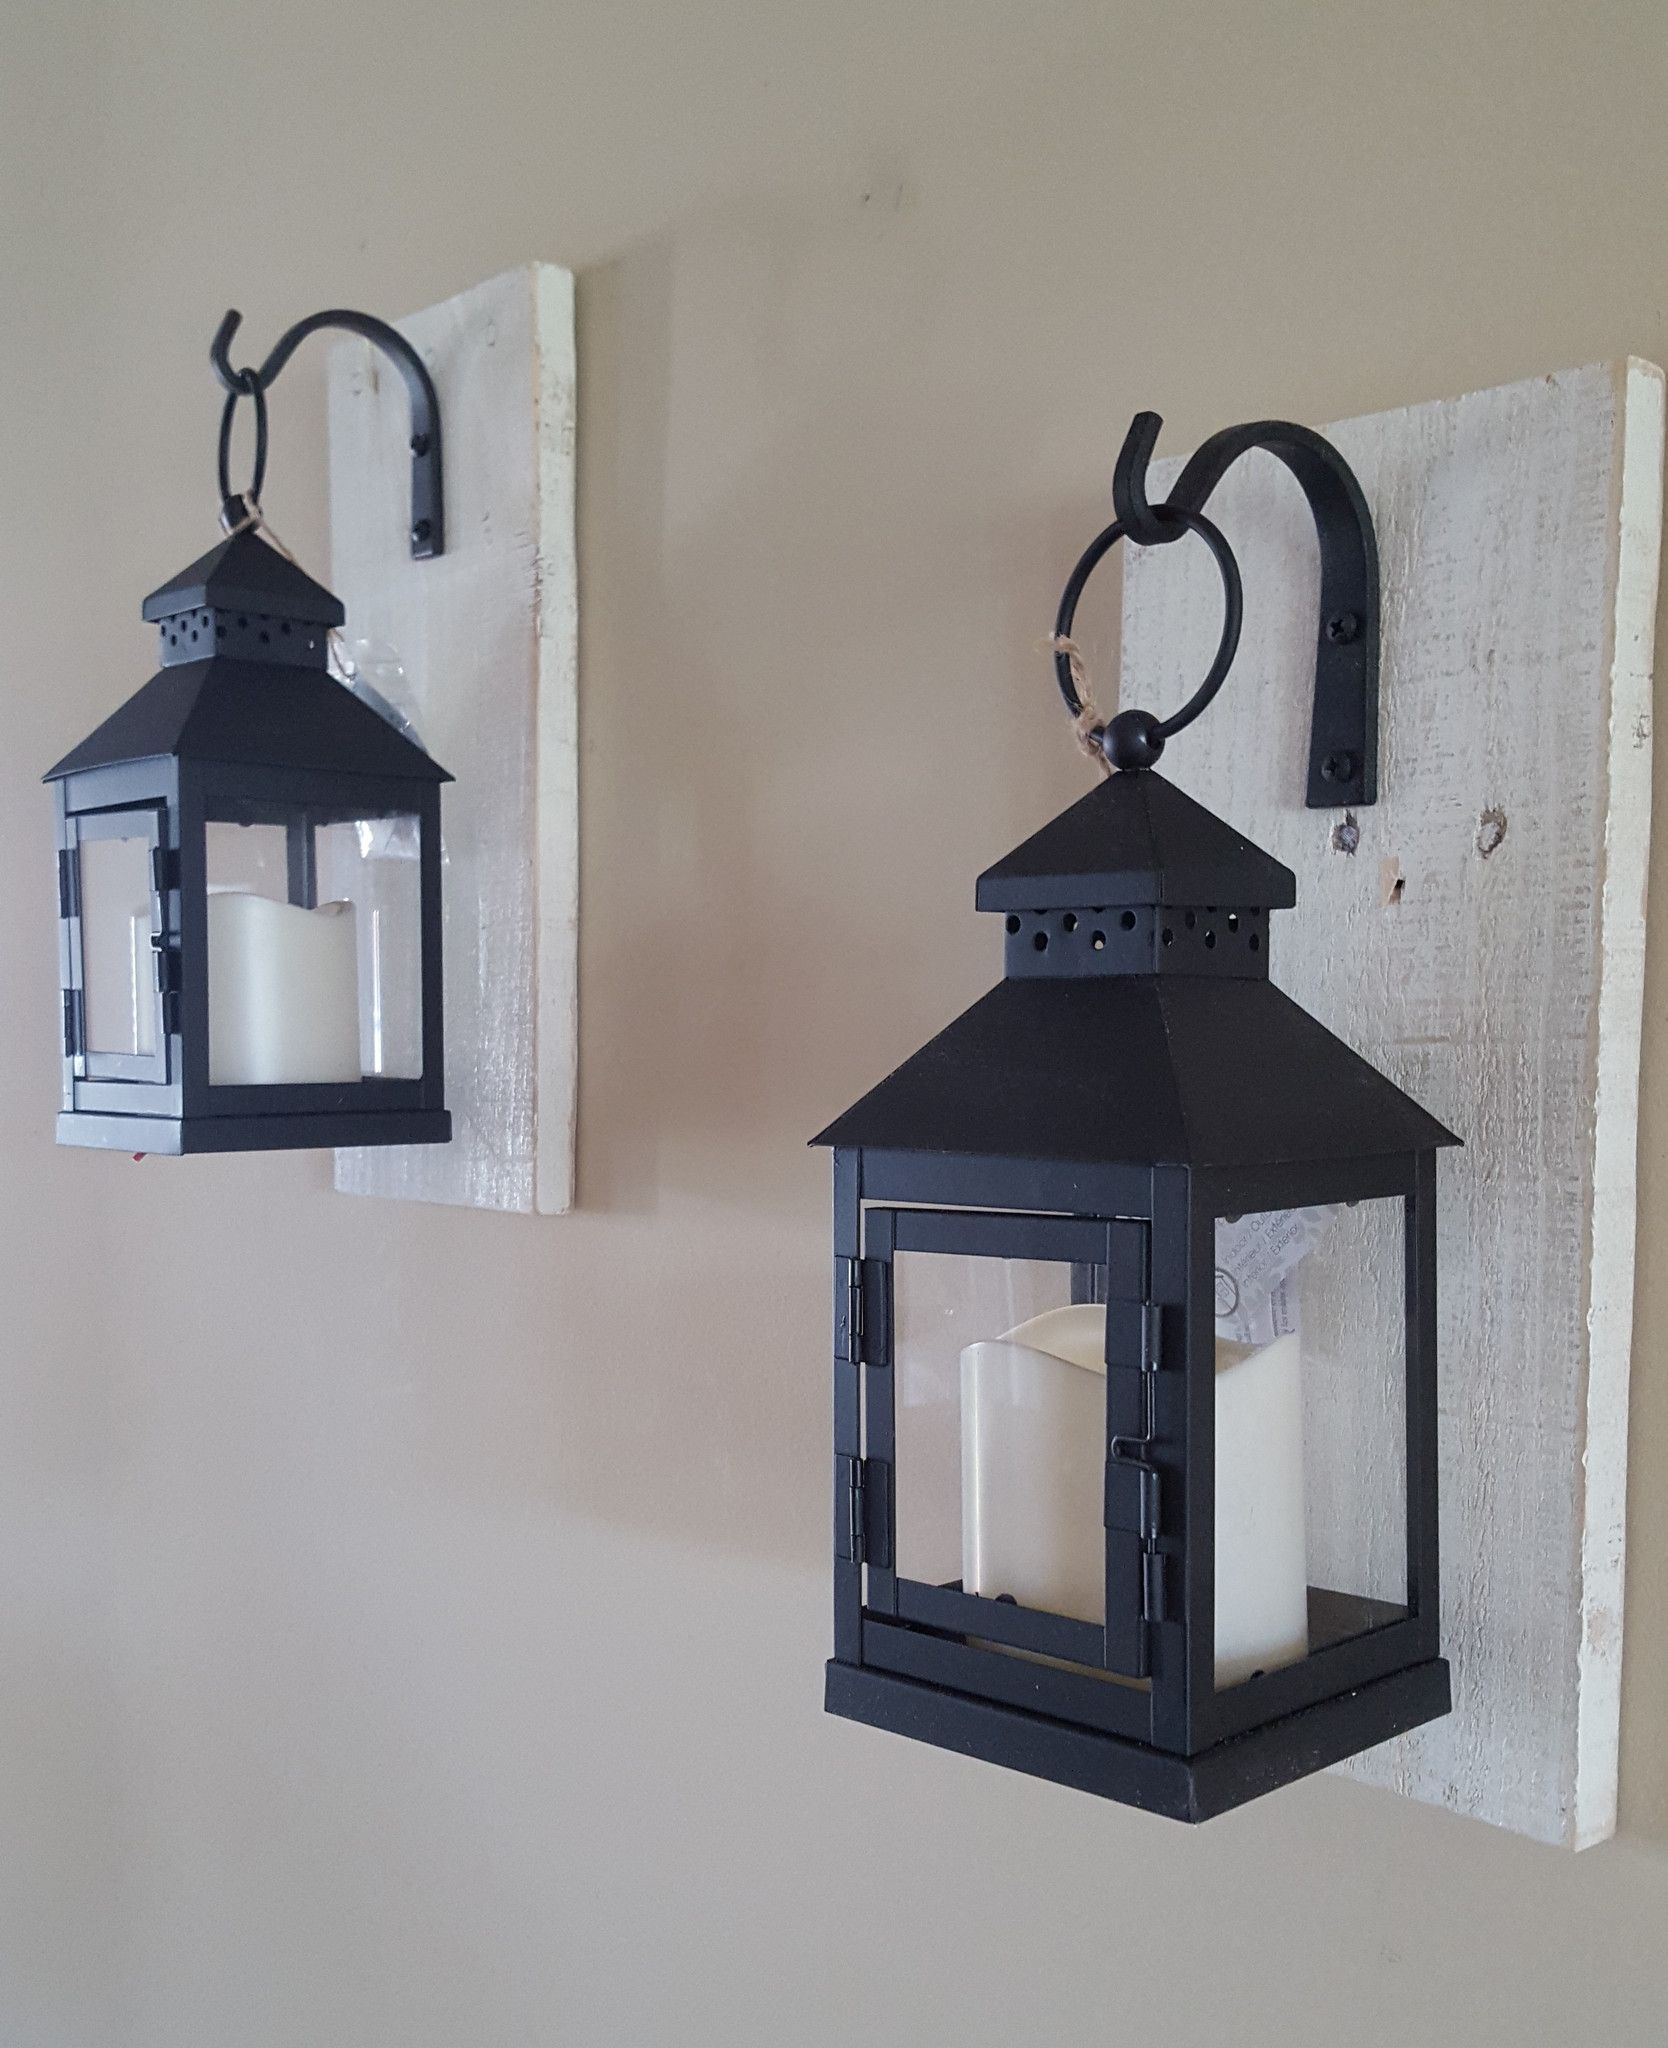 Set Of 2 Small Rustic Wall Mounted Lantern Sconces Black Metal And Glass Lanterns Rustic Wall Sconces Wall Mount Lantern Rustic Walls